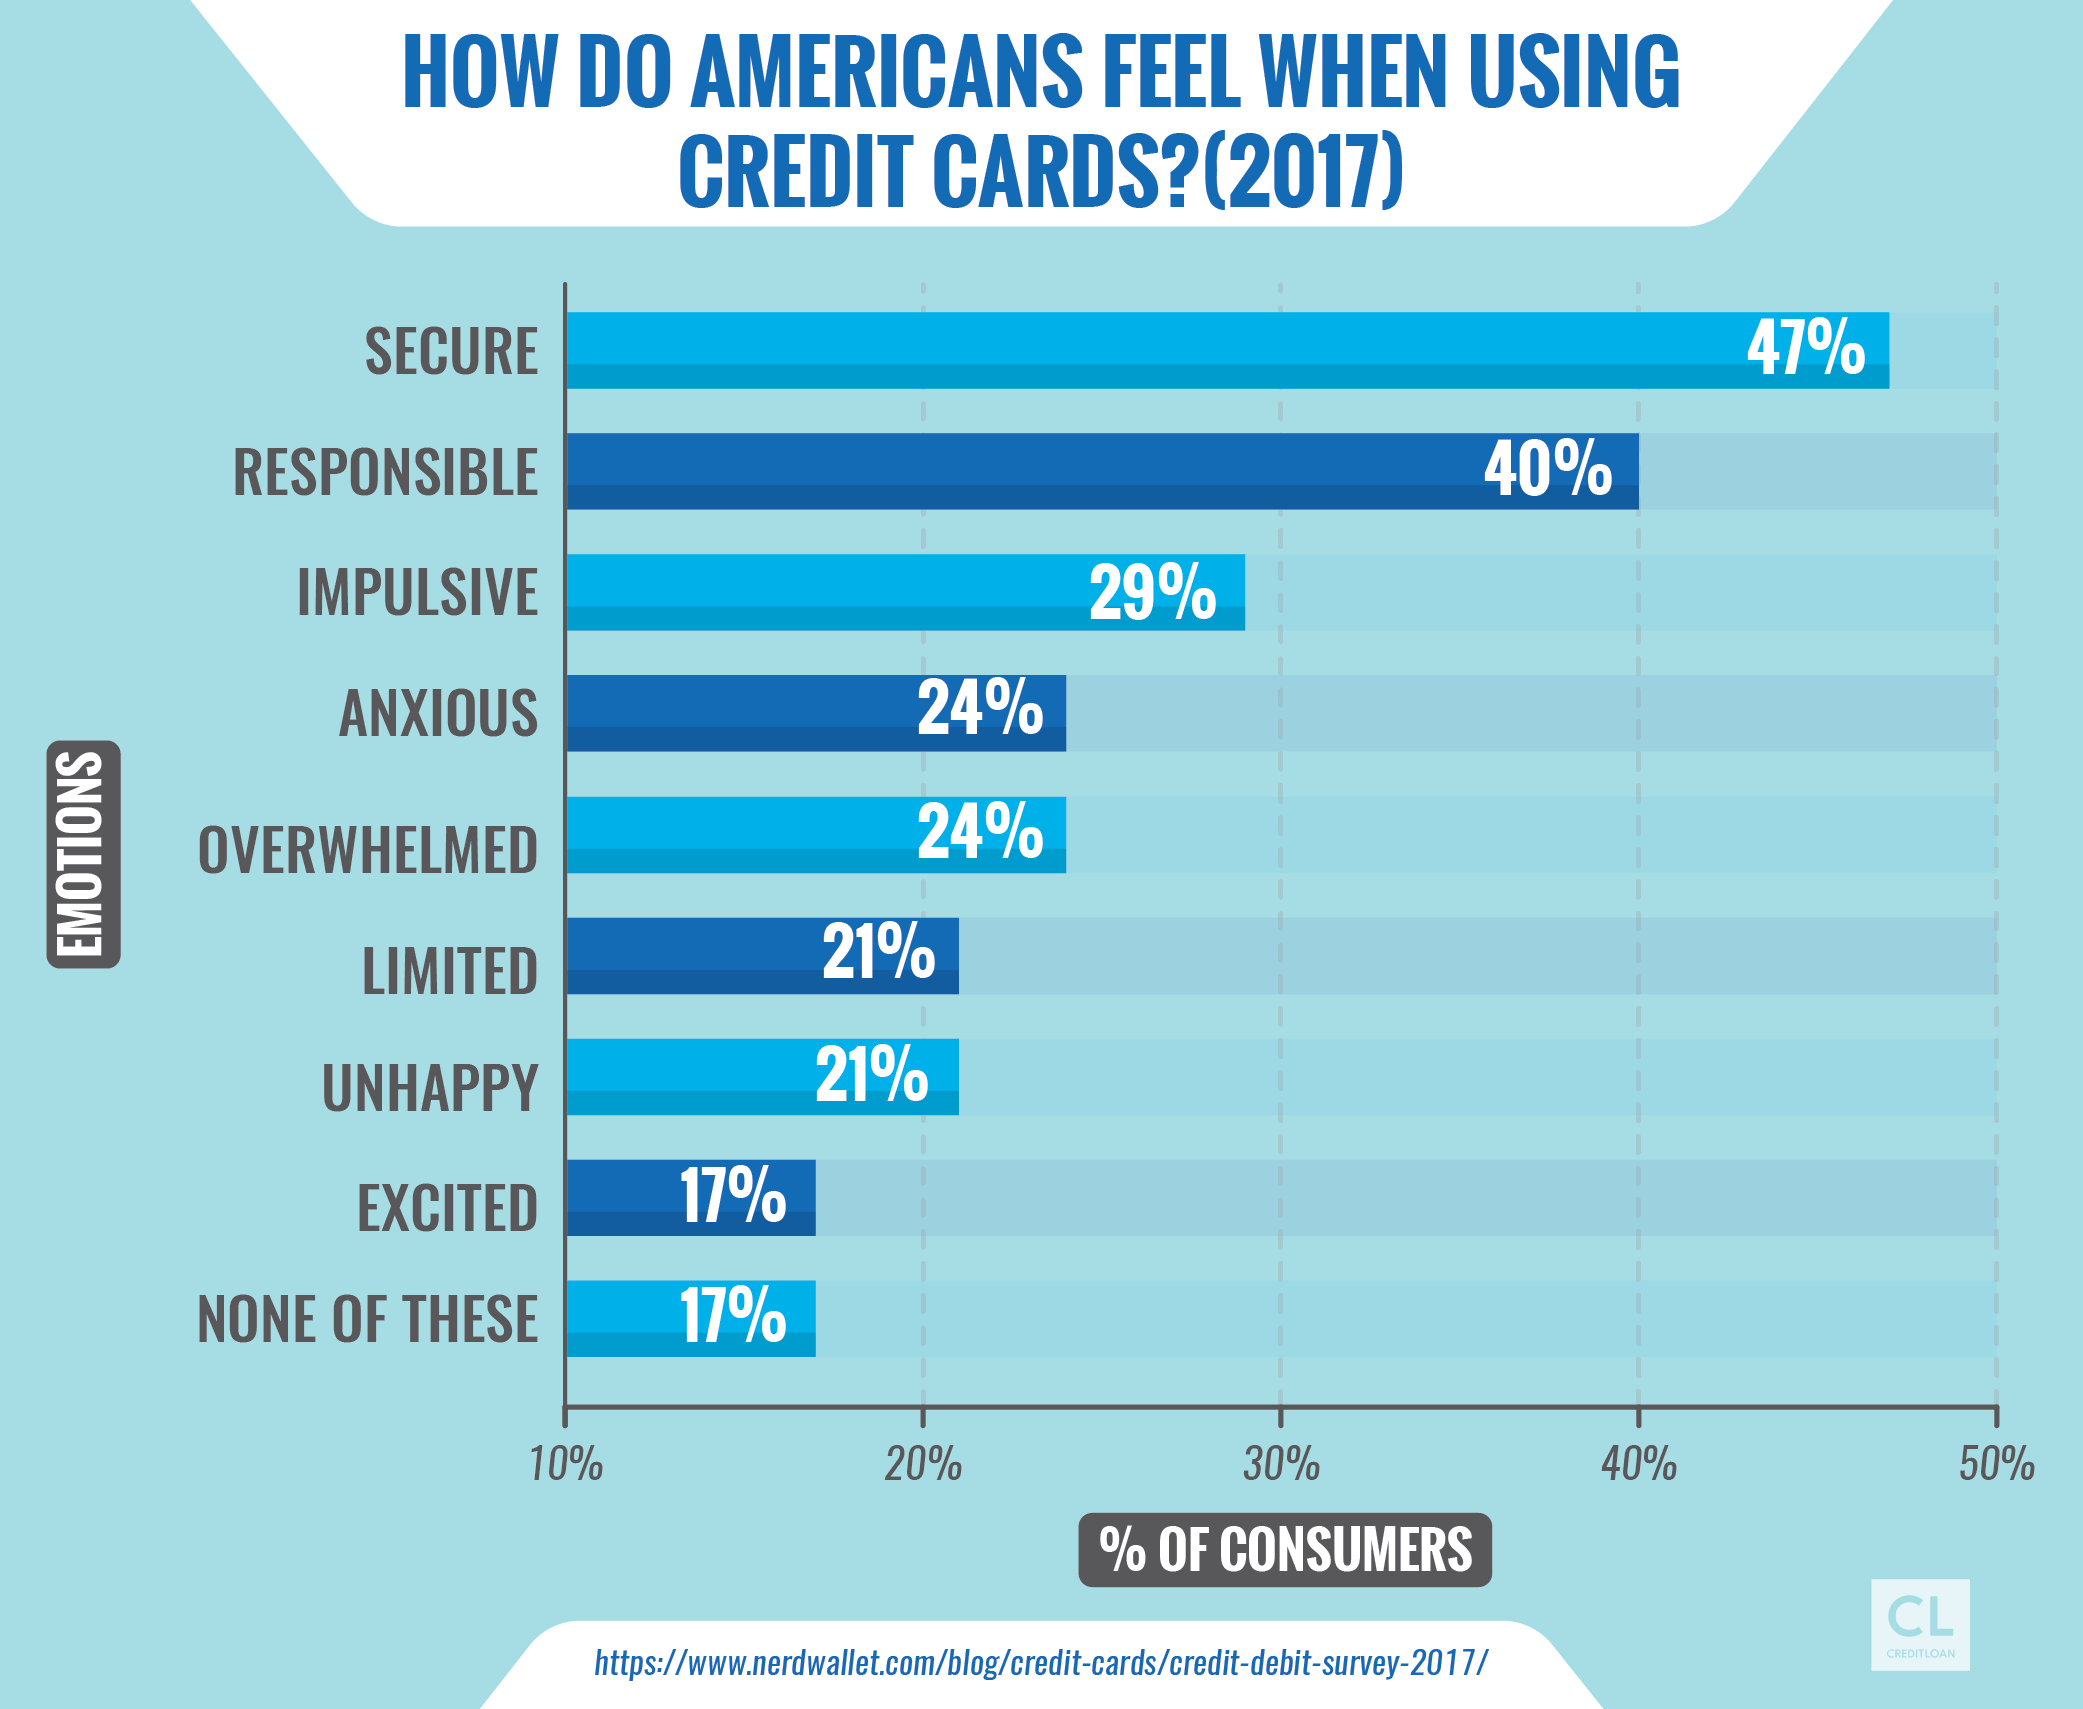 How Do Americans Feel When Using Credit Cards?